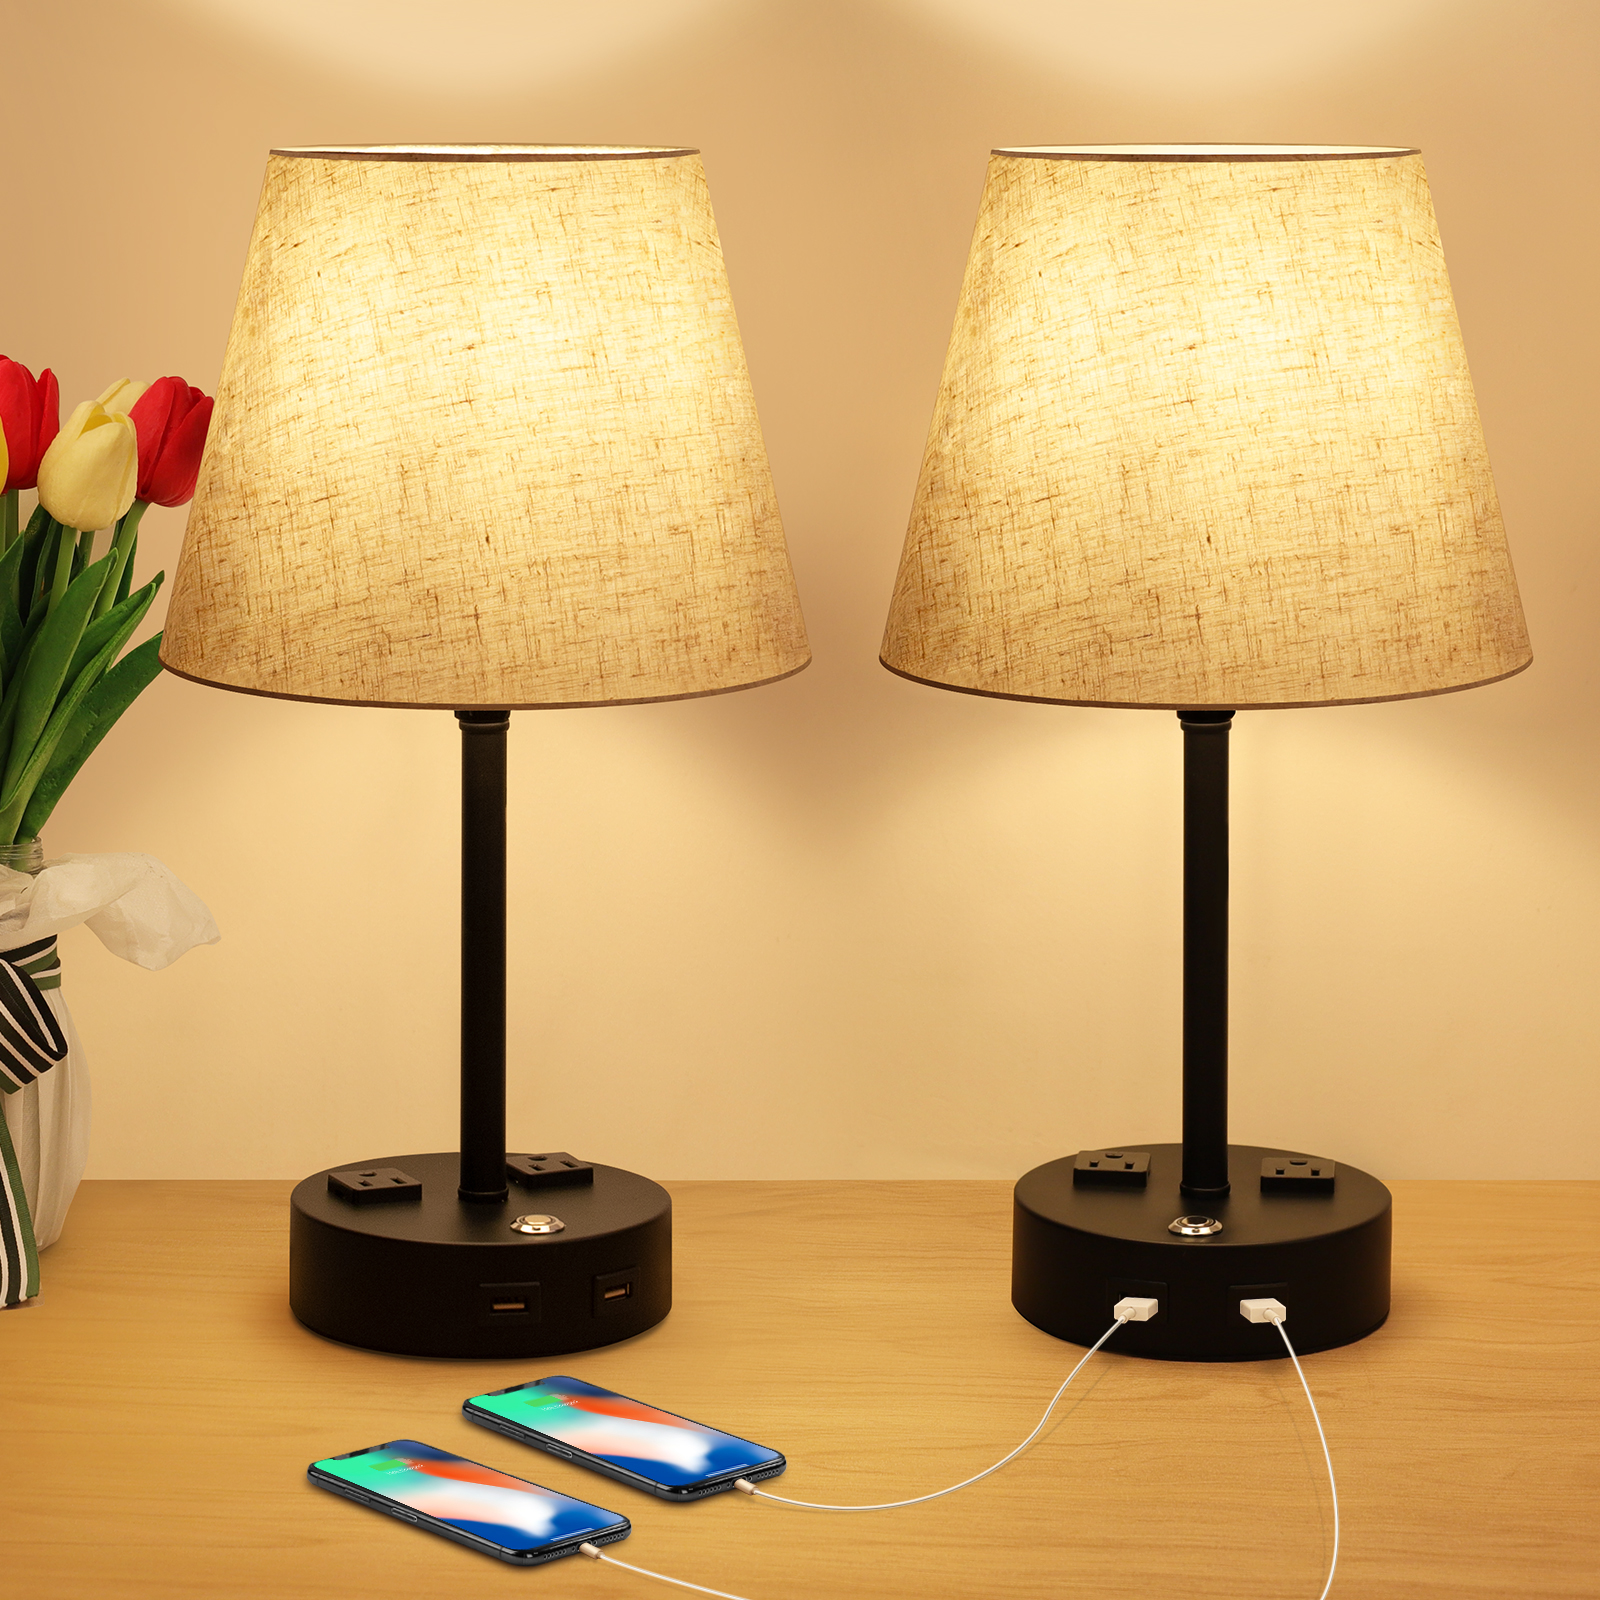 Bedroom Lamps, USB Nightstand Lamp, Dimmable Bedside Lamps Set Of 2